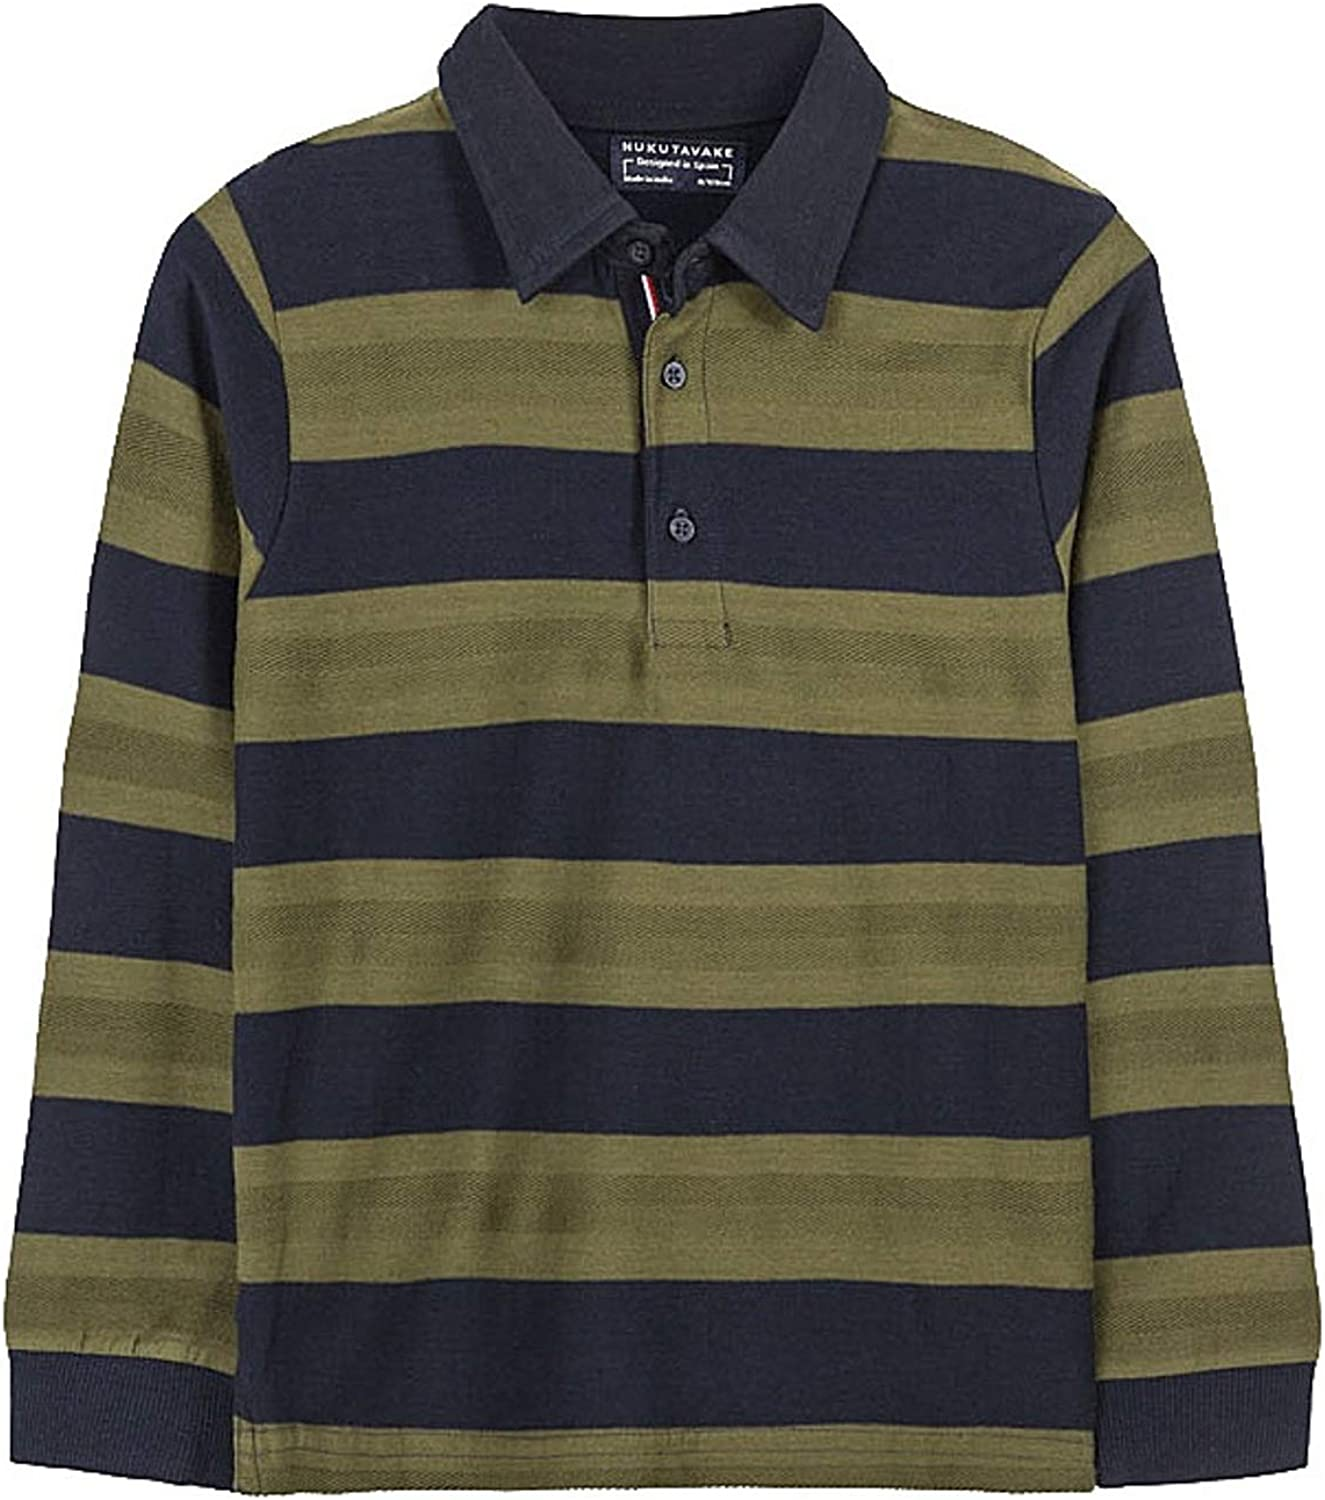 Mayoral - Striped Polo L/s for Boys - 7125, Green